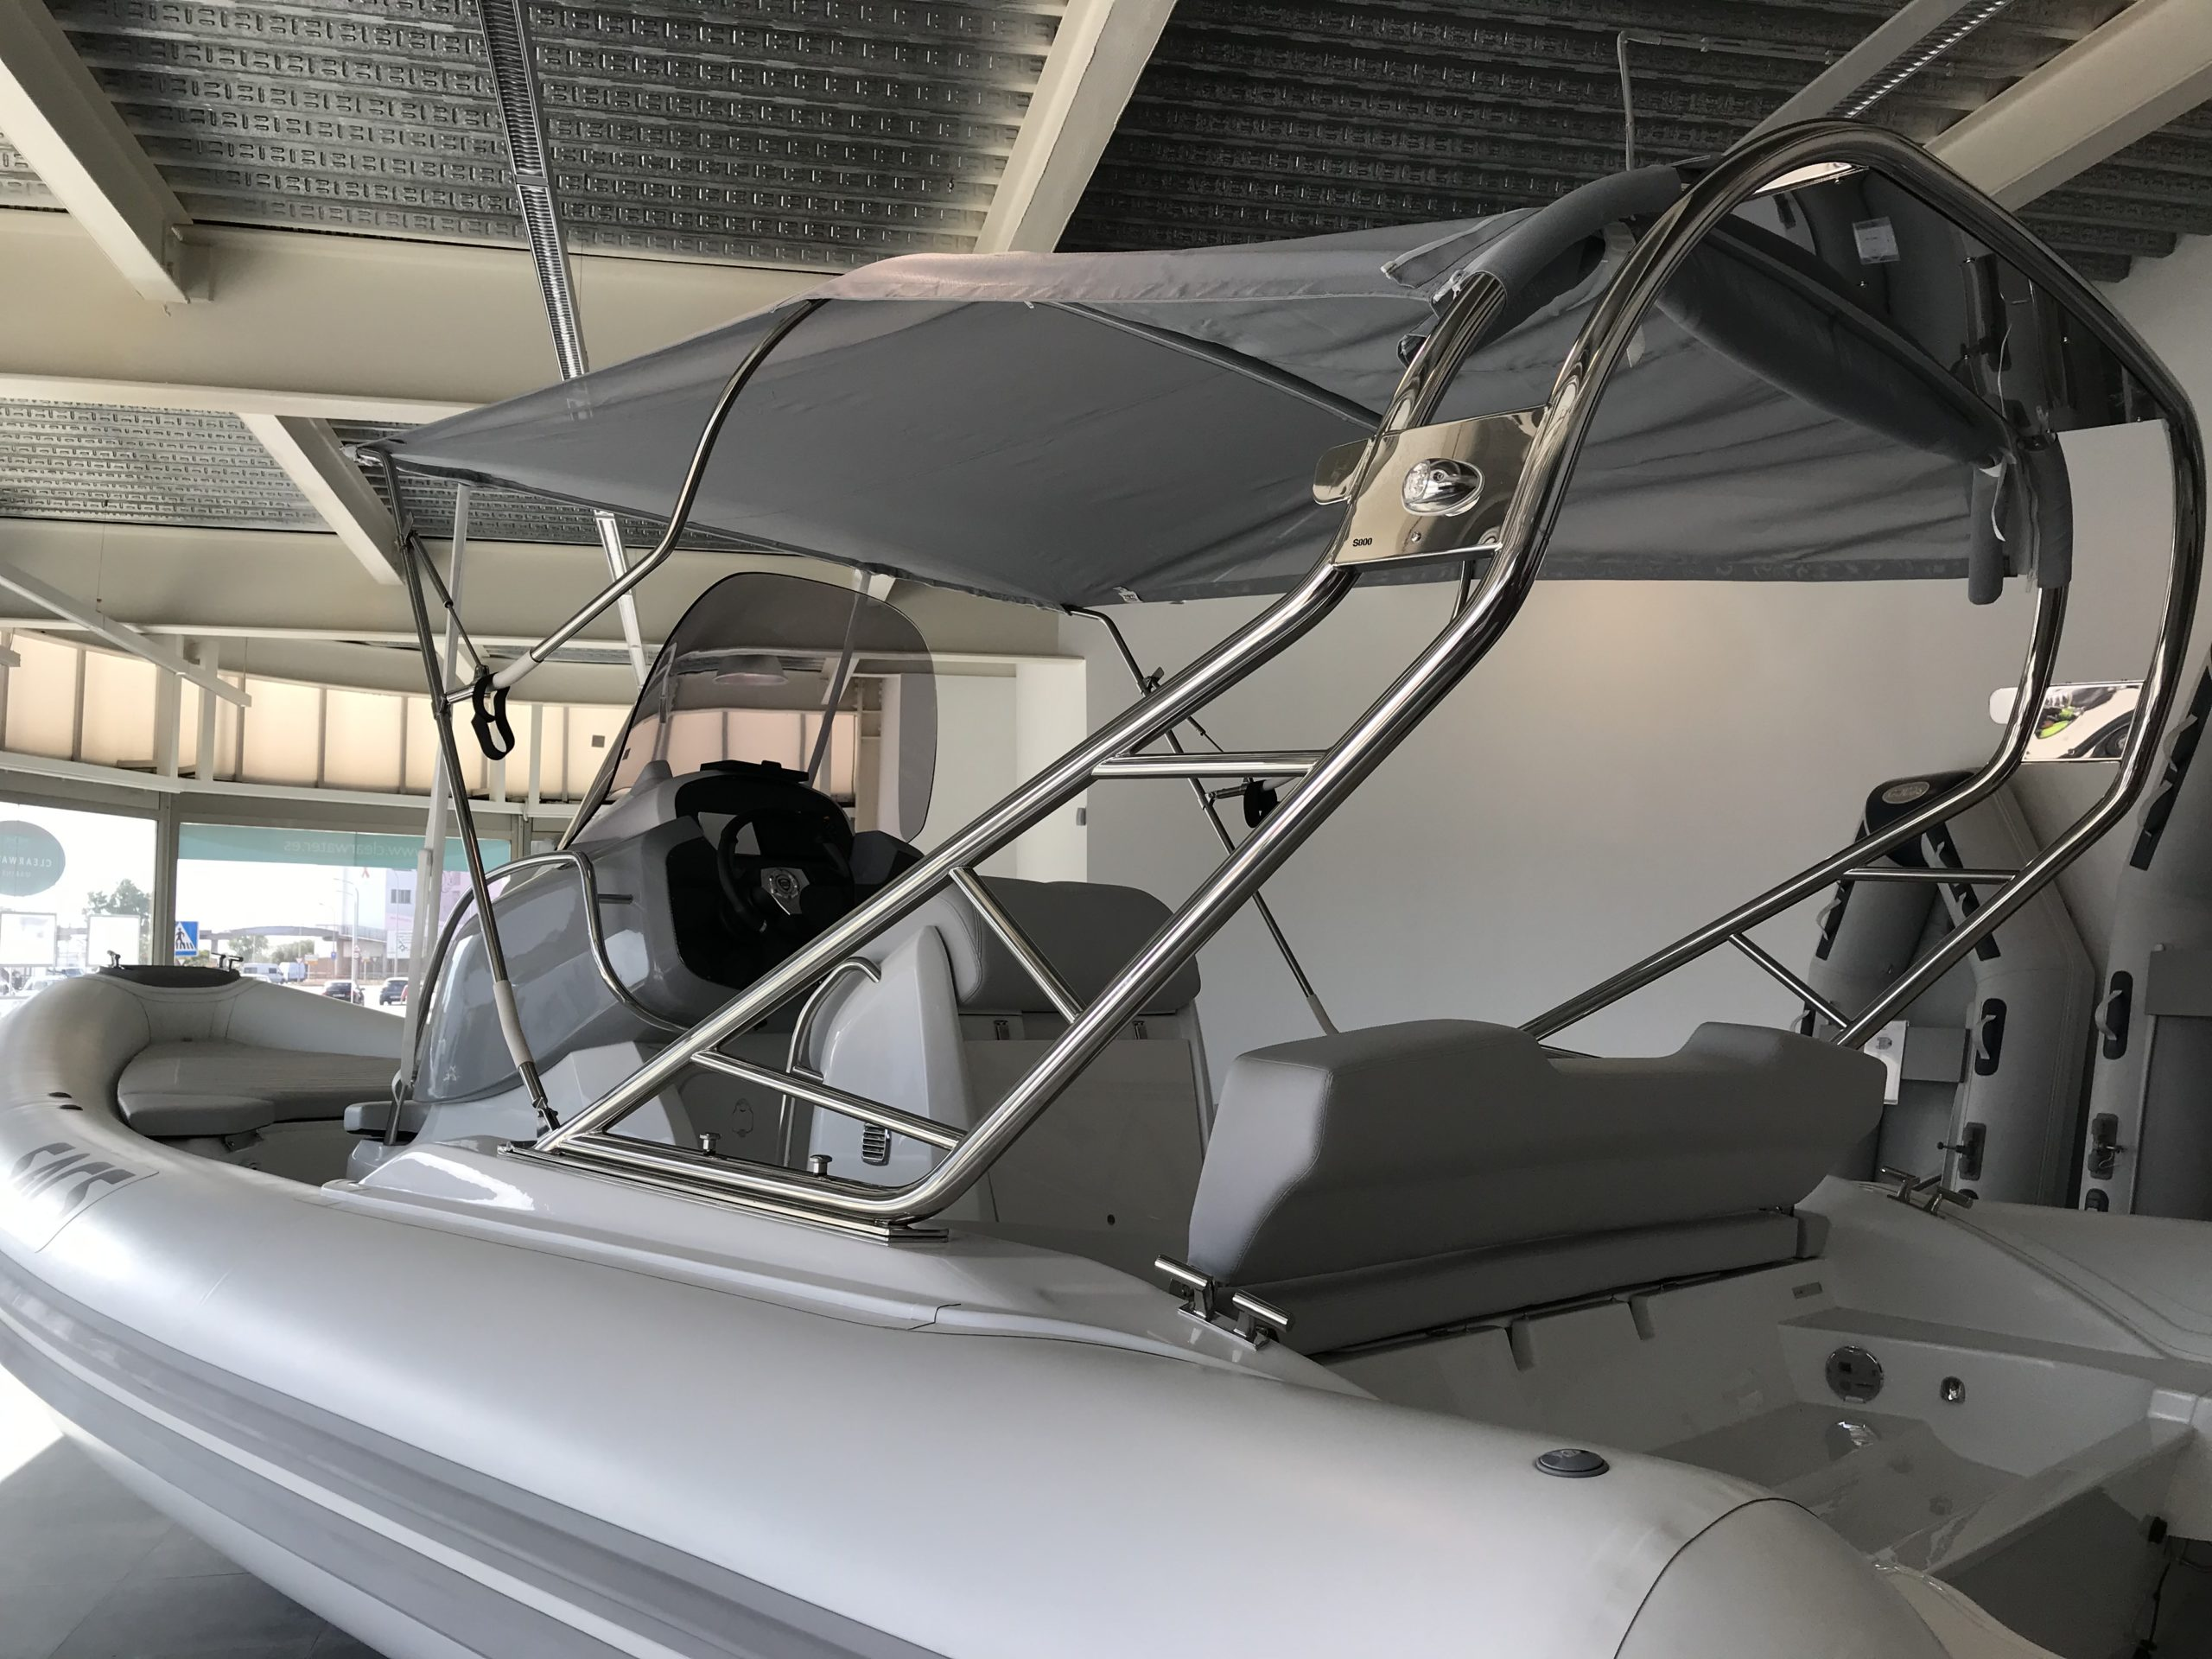 Sacs Strider 800 for sale in Menorca - Clearwater Marine